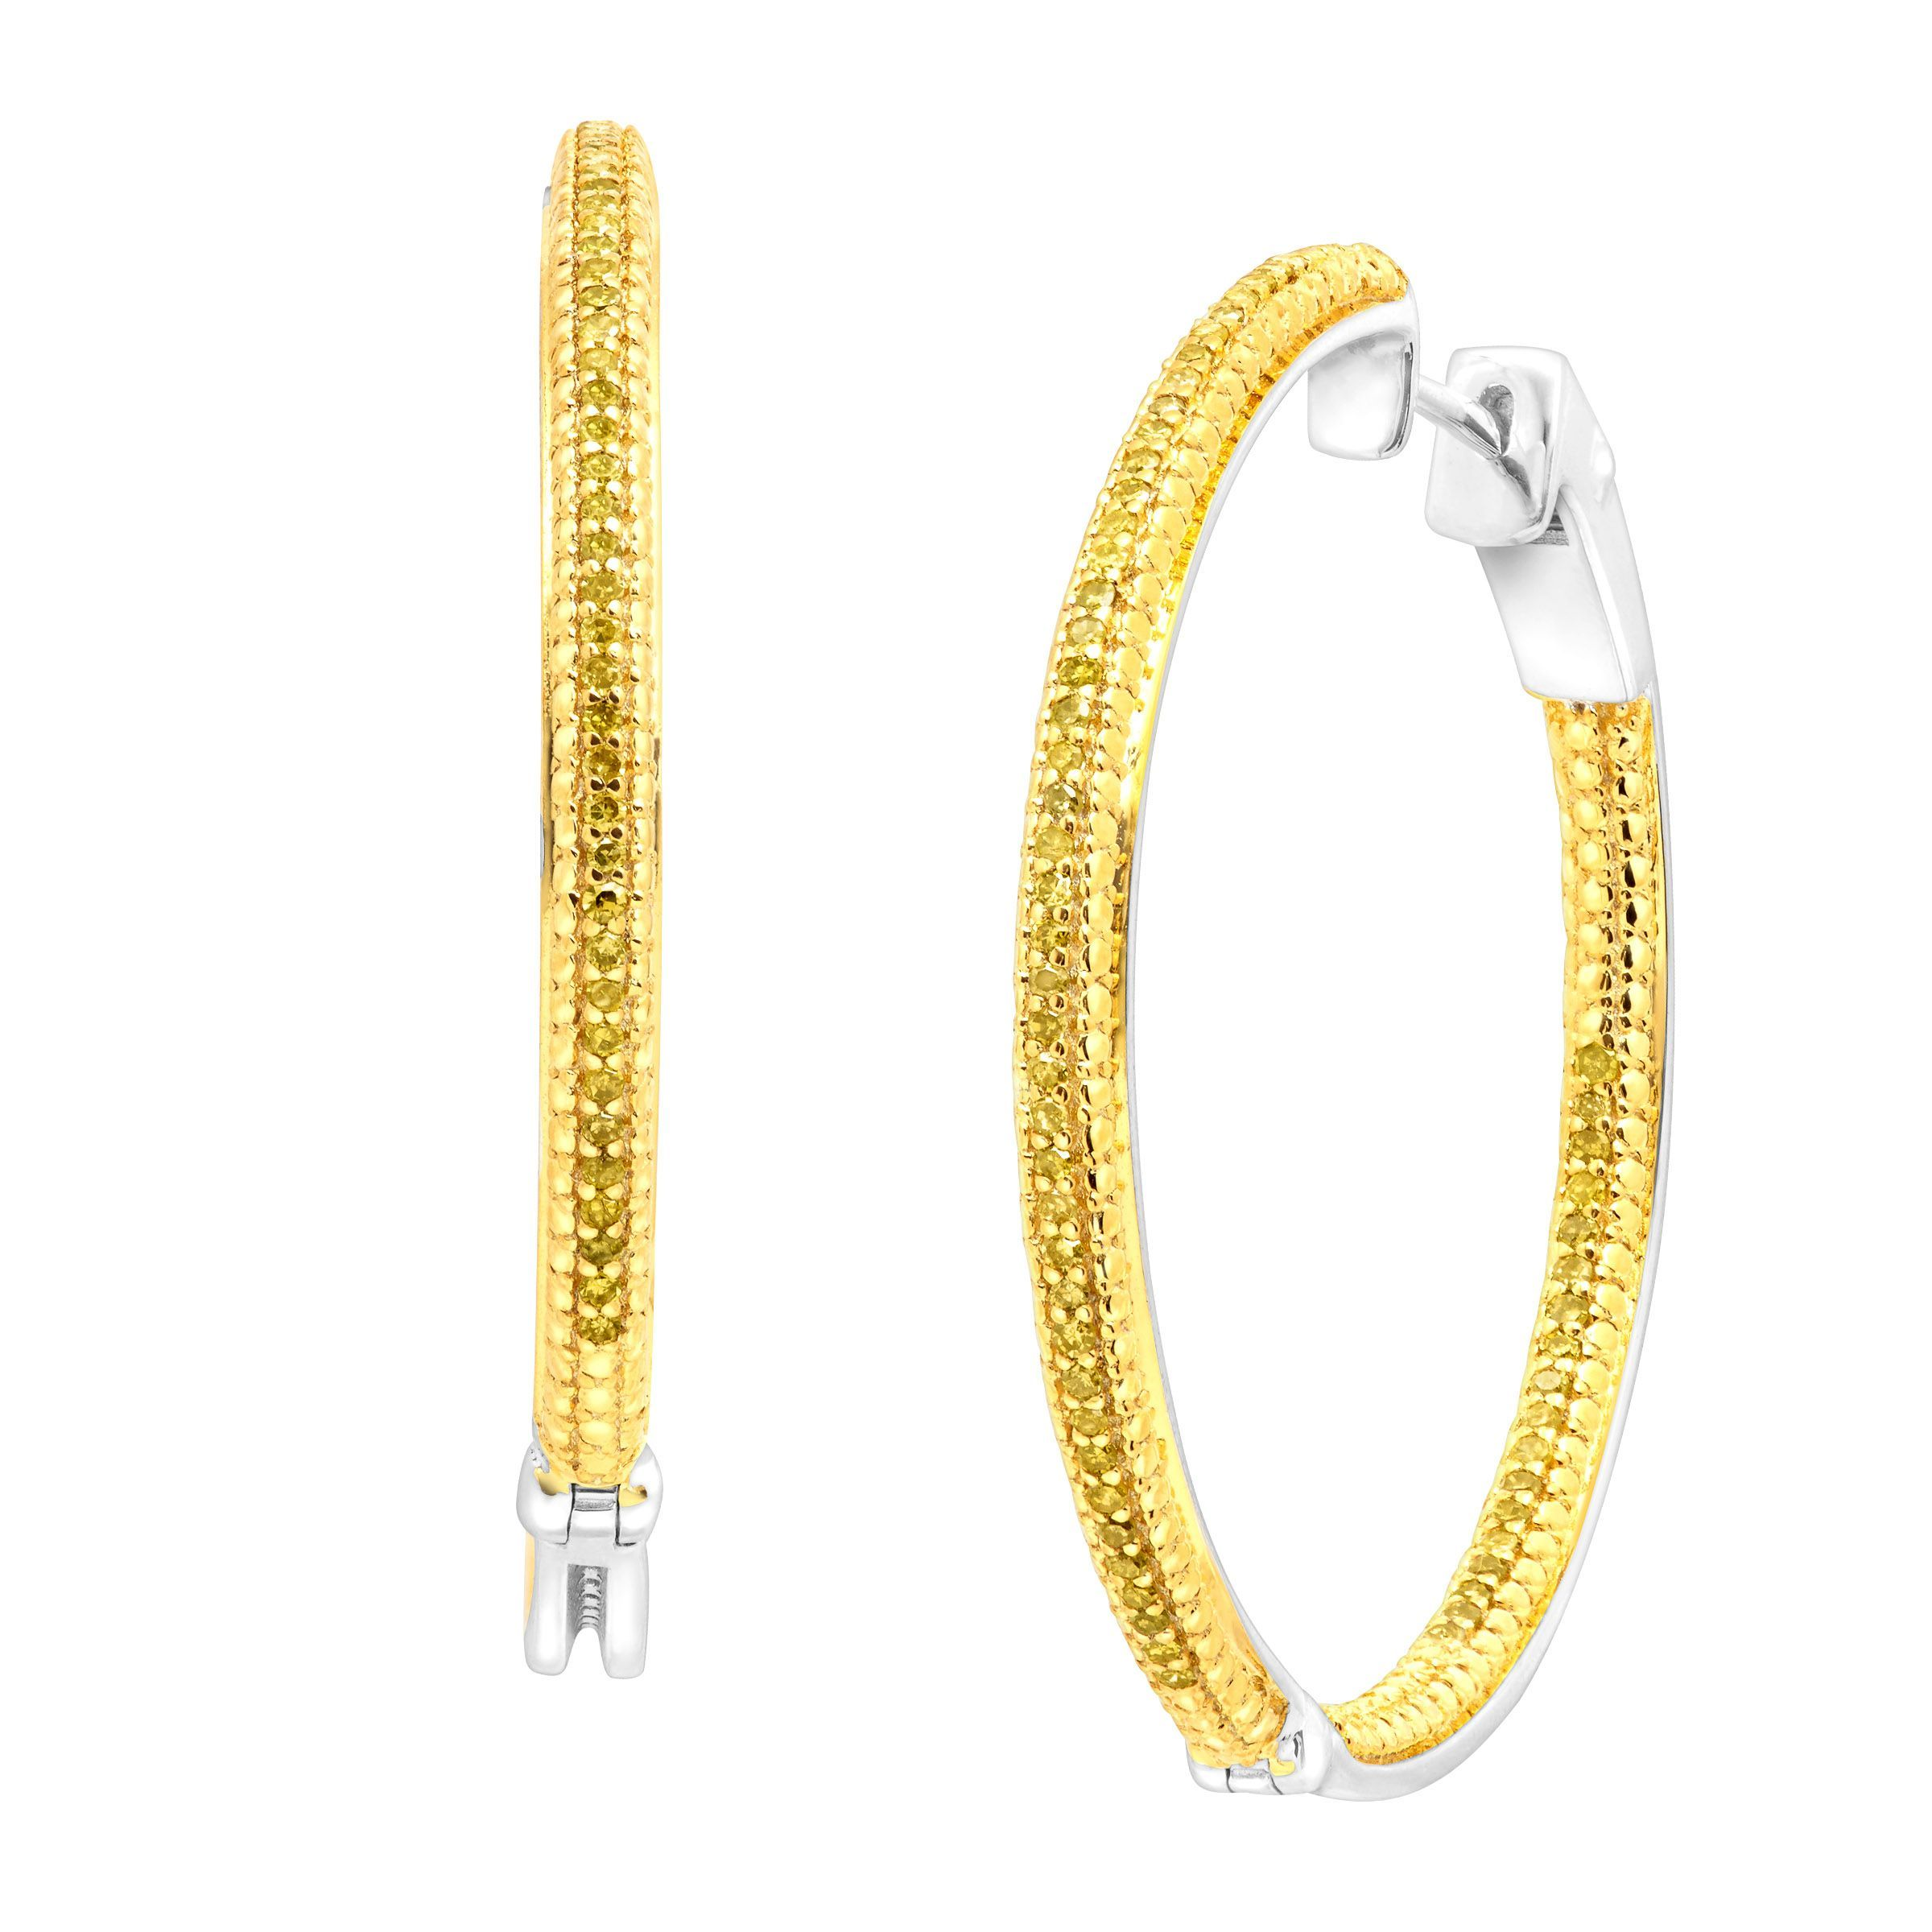 hood classic plated products earrings hoop gold over steel